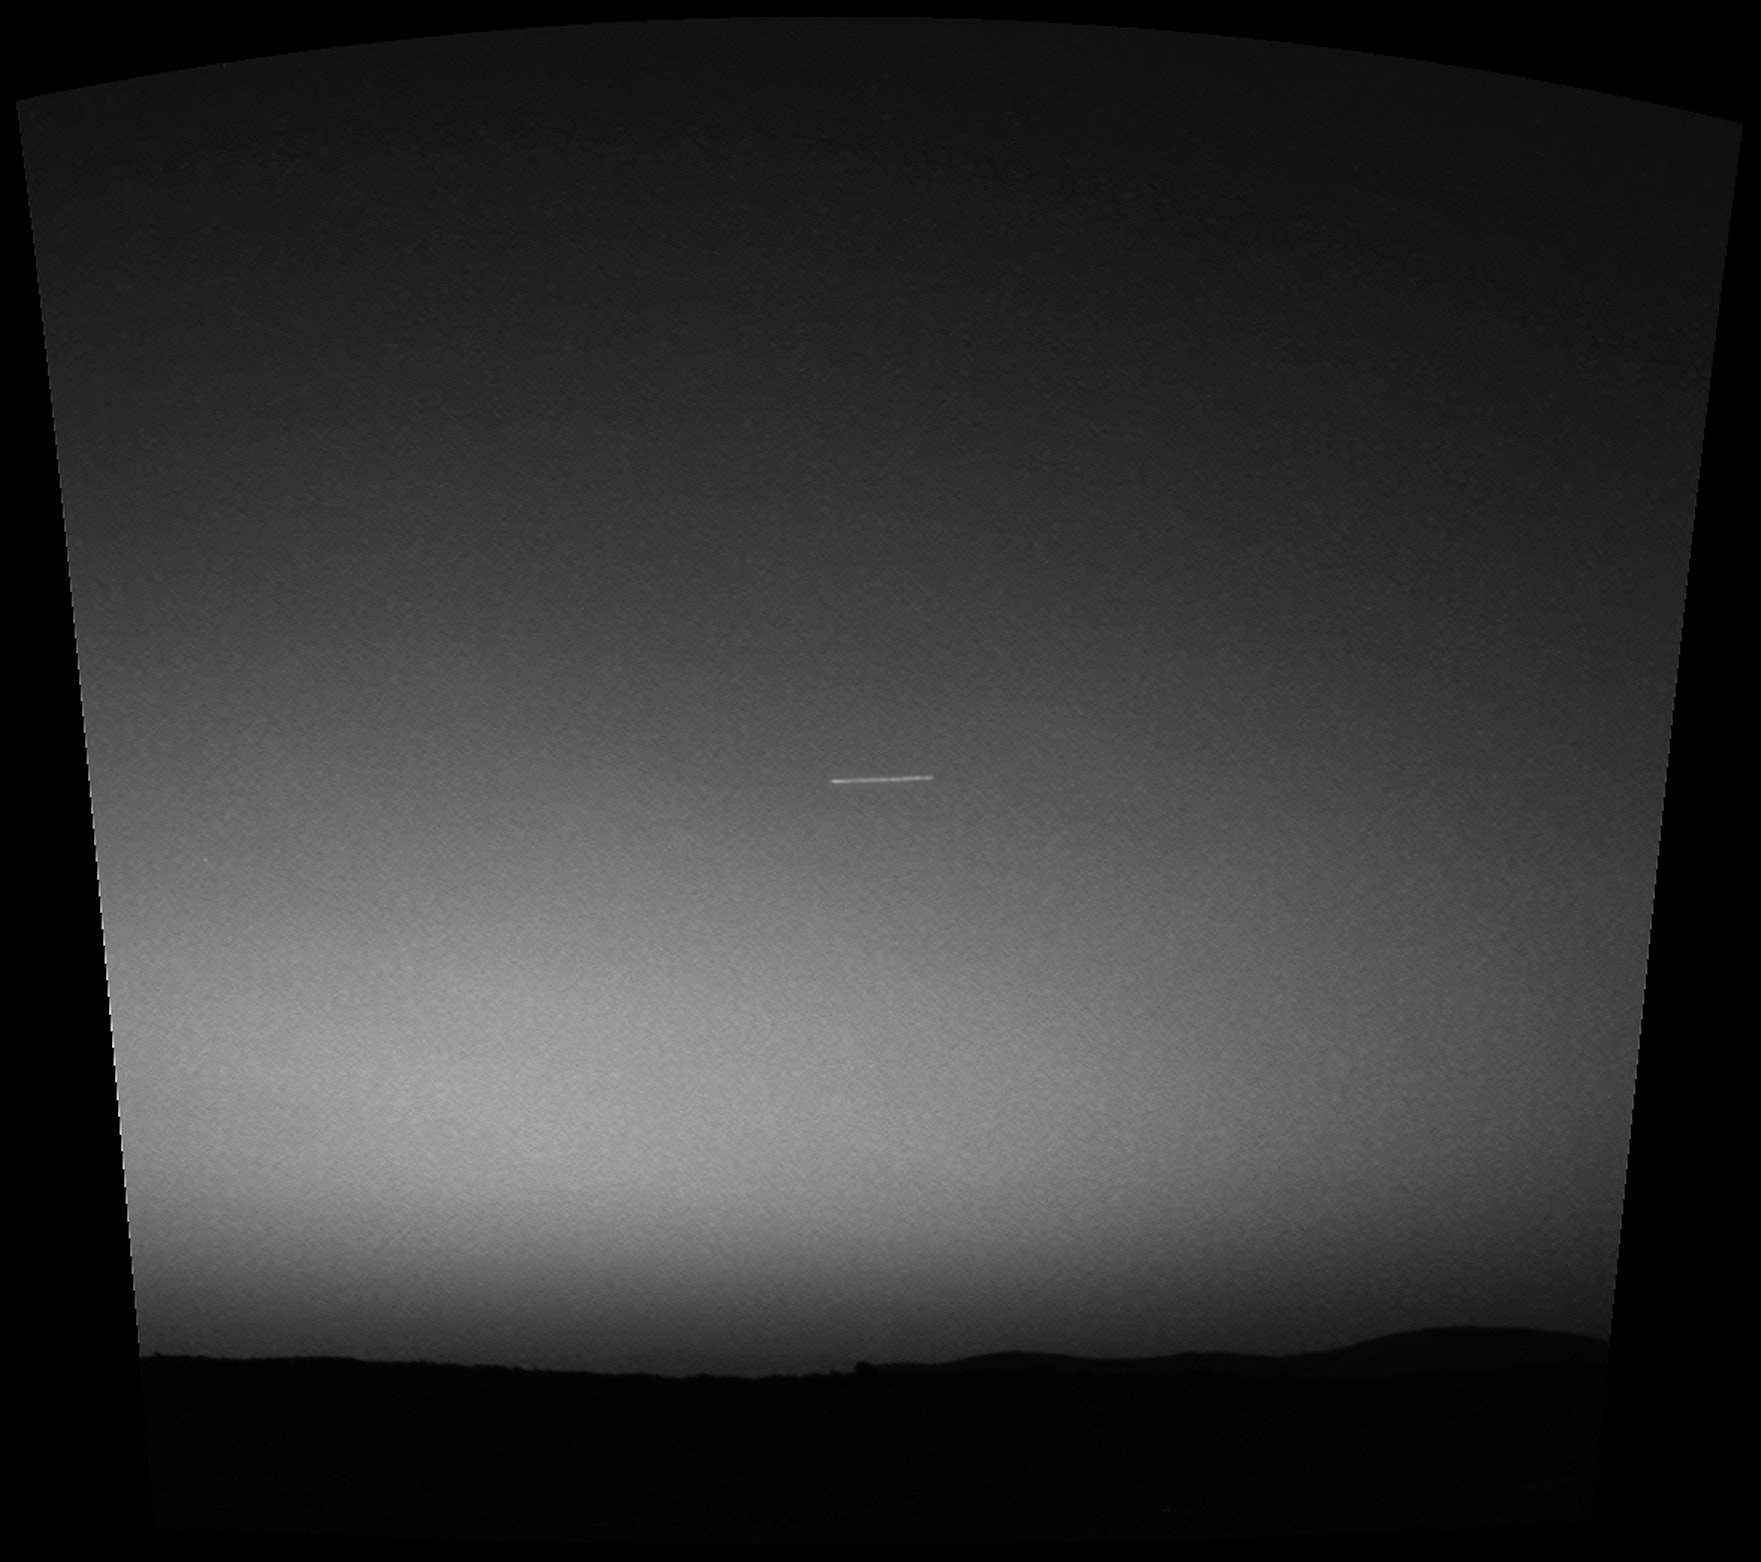 The first meteor photographed on Mars, taken by Mars rover Spirit on March 7, 2004 (Sol 63), at 04:50:19 local time (LST), with an exposure time of 15 seconds